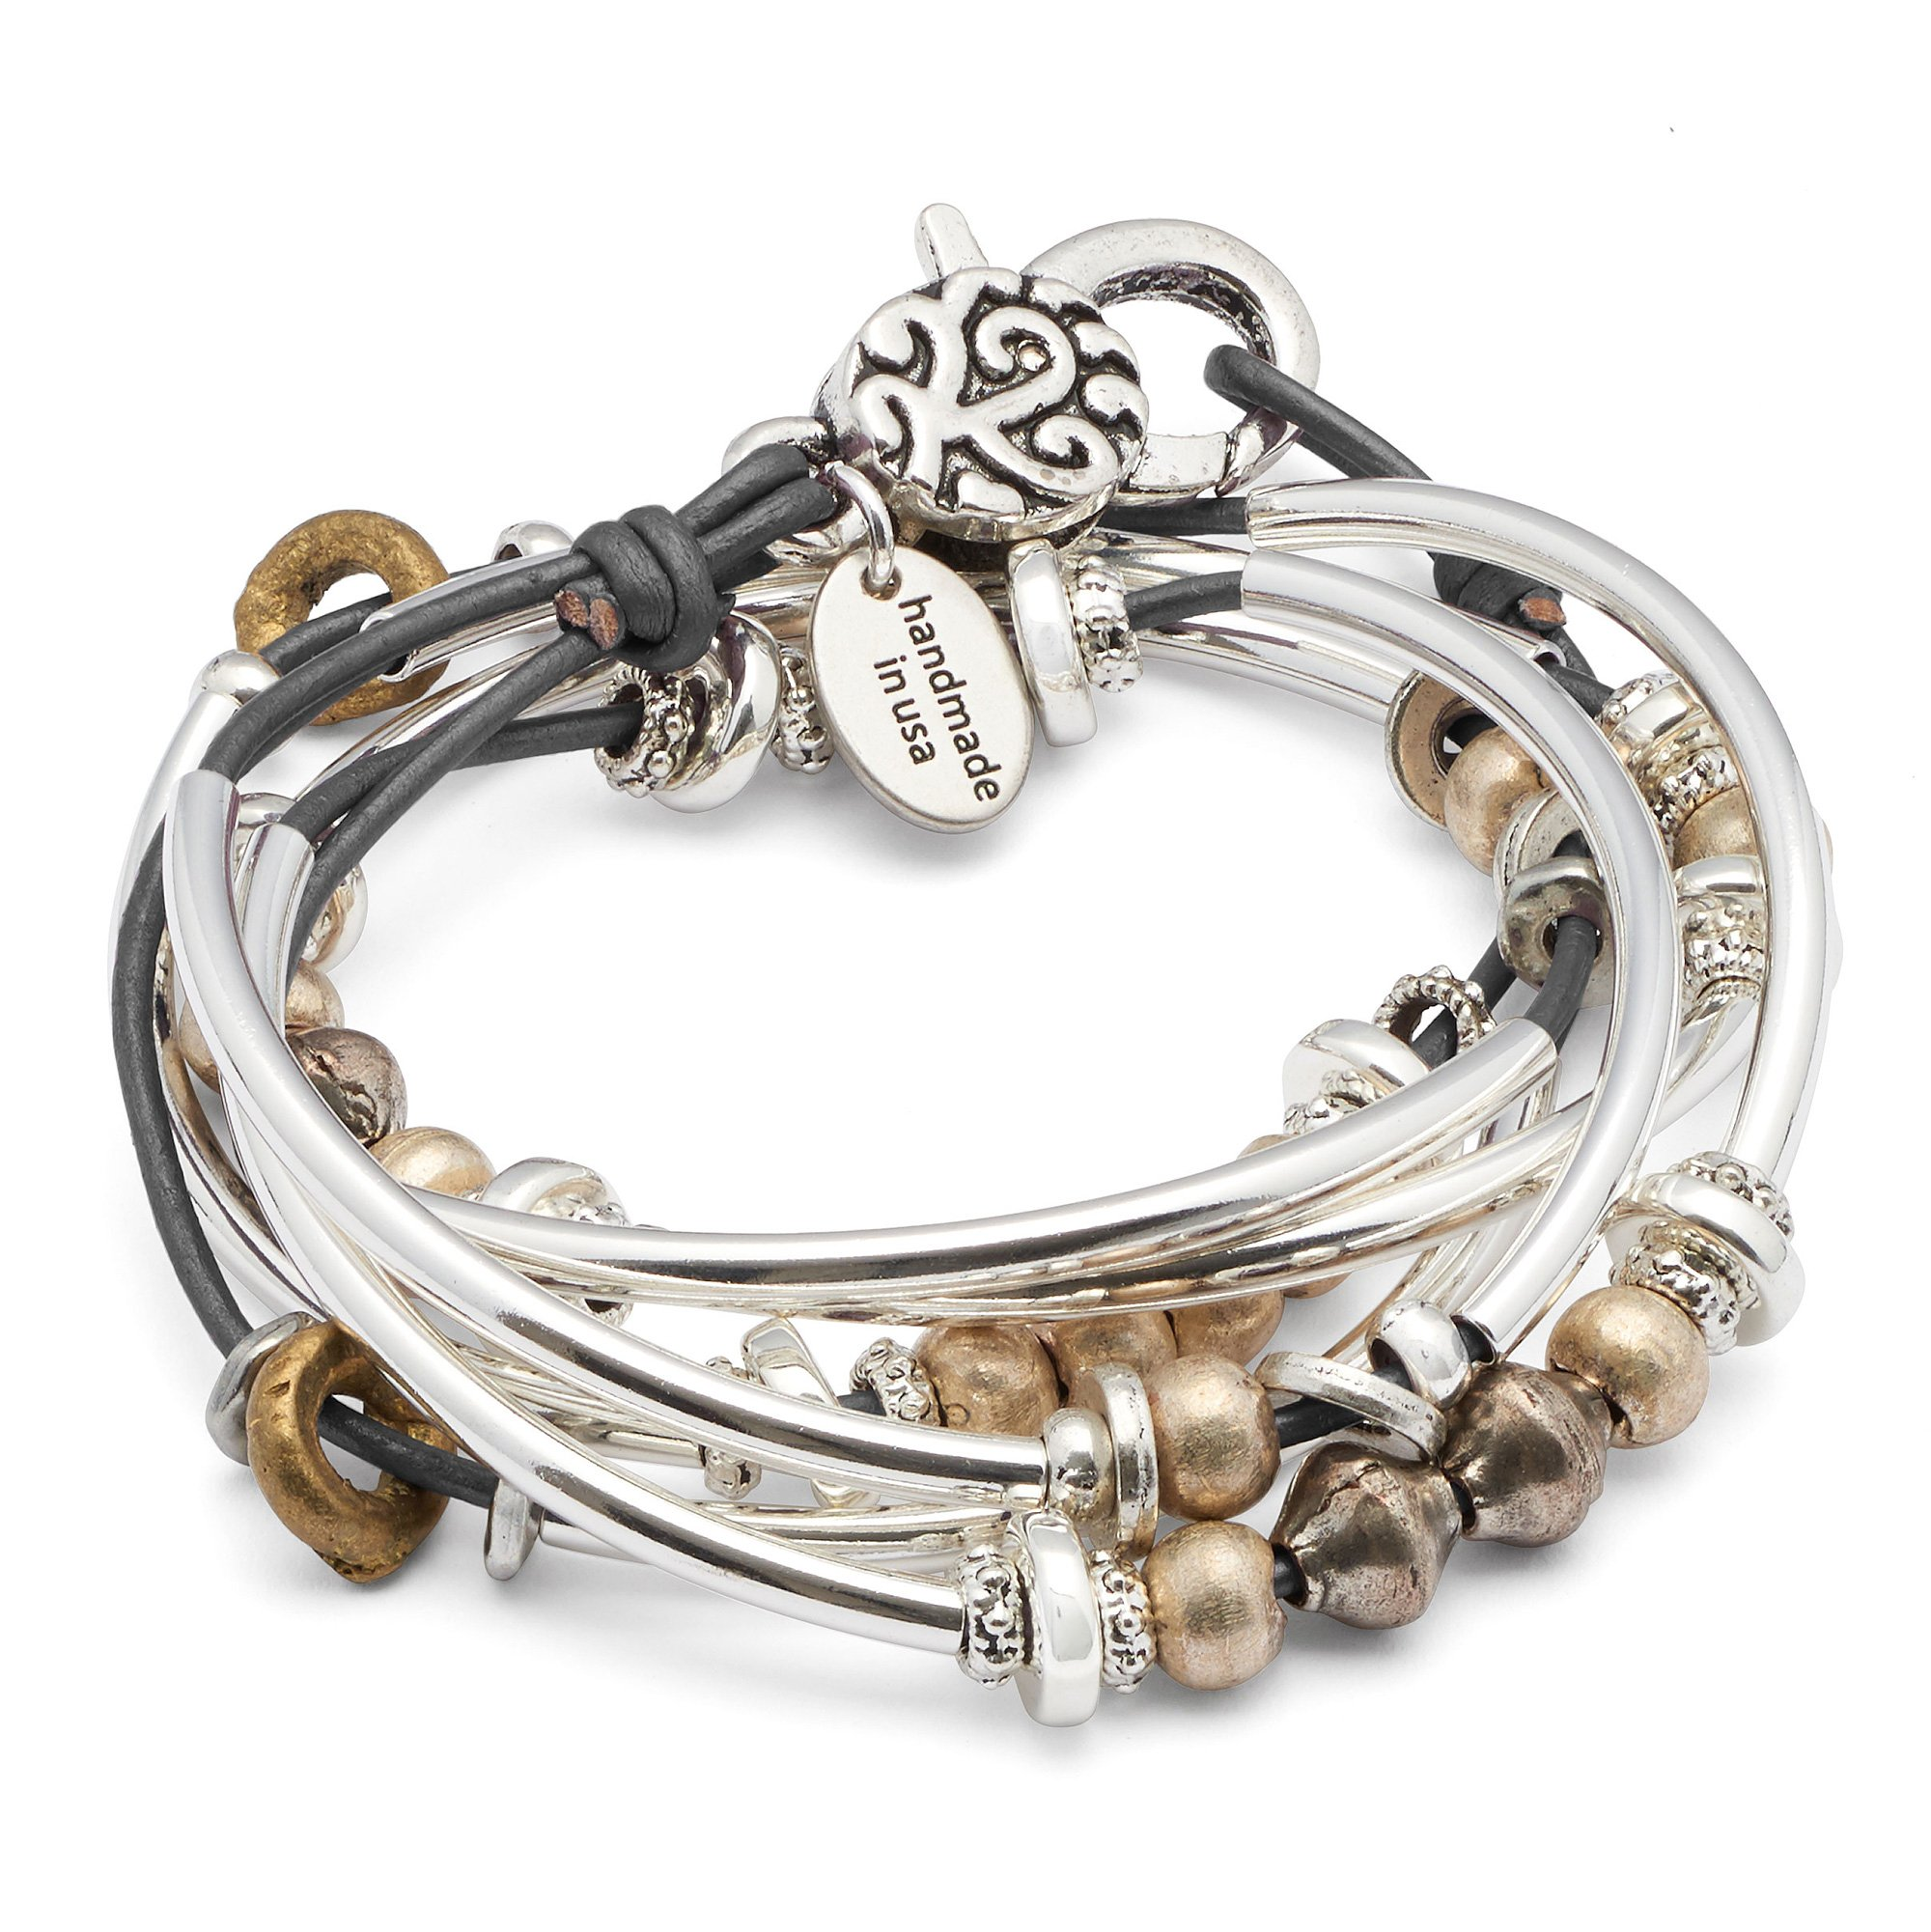 Lizzy James Bella Bracelet Necklace in Silver and Metallic Gunmetal Gray Leather (Large) by Lizzy James